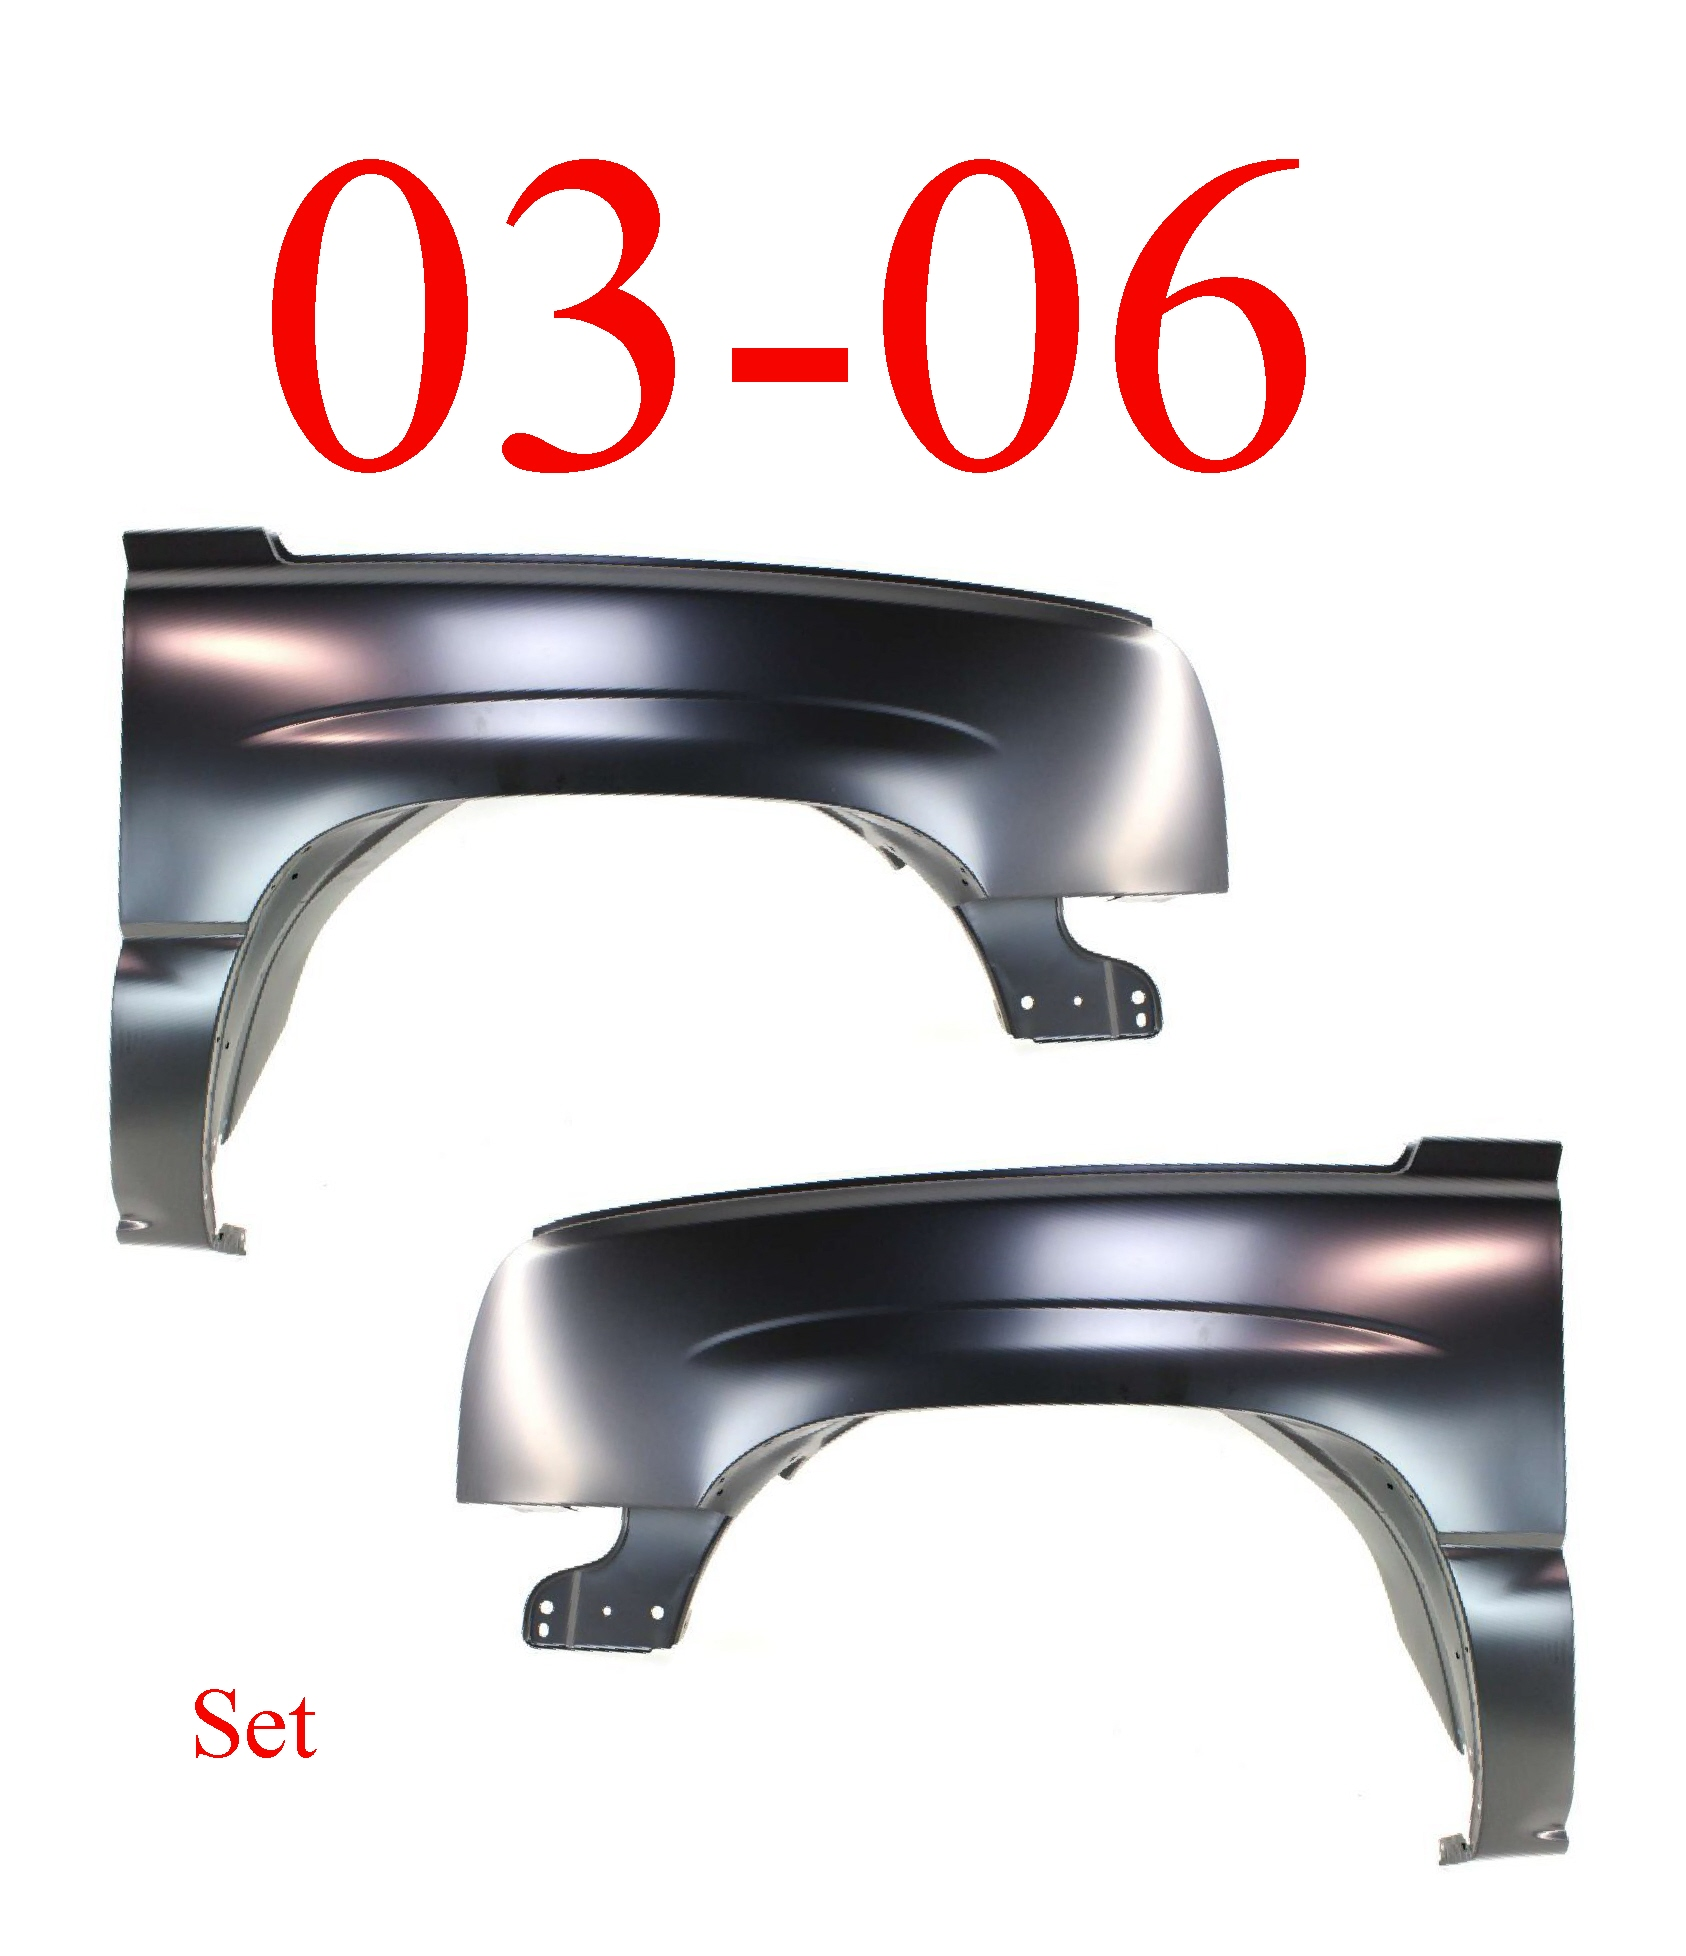 03-06 Chevy Silverado Front Fender Set